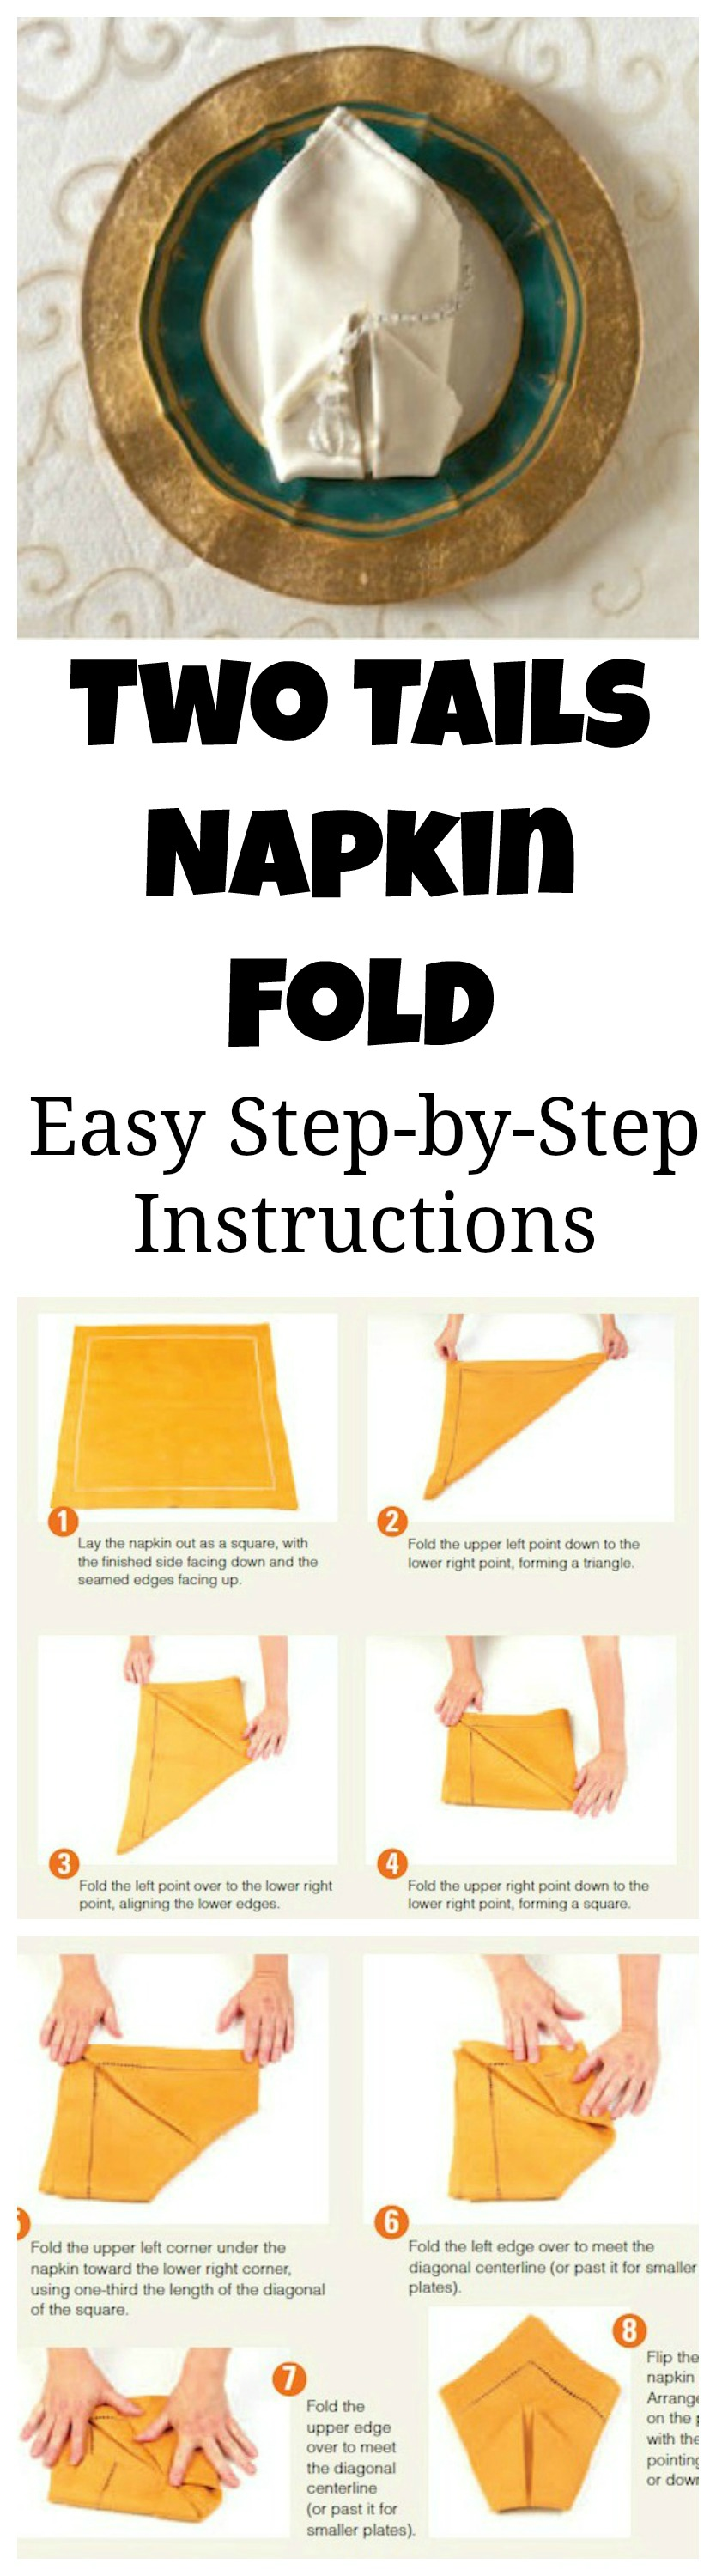 How To Fold Your Napkins For Thanksgiving Easy Two Tails Napkin Table